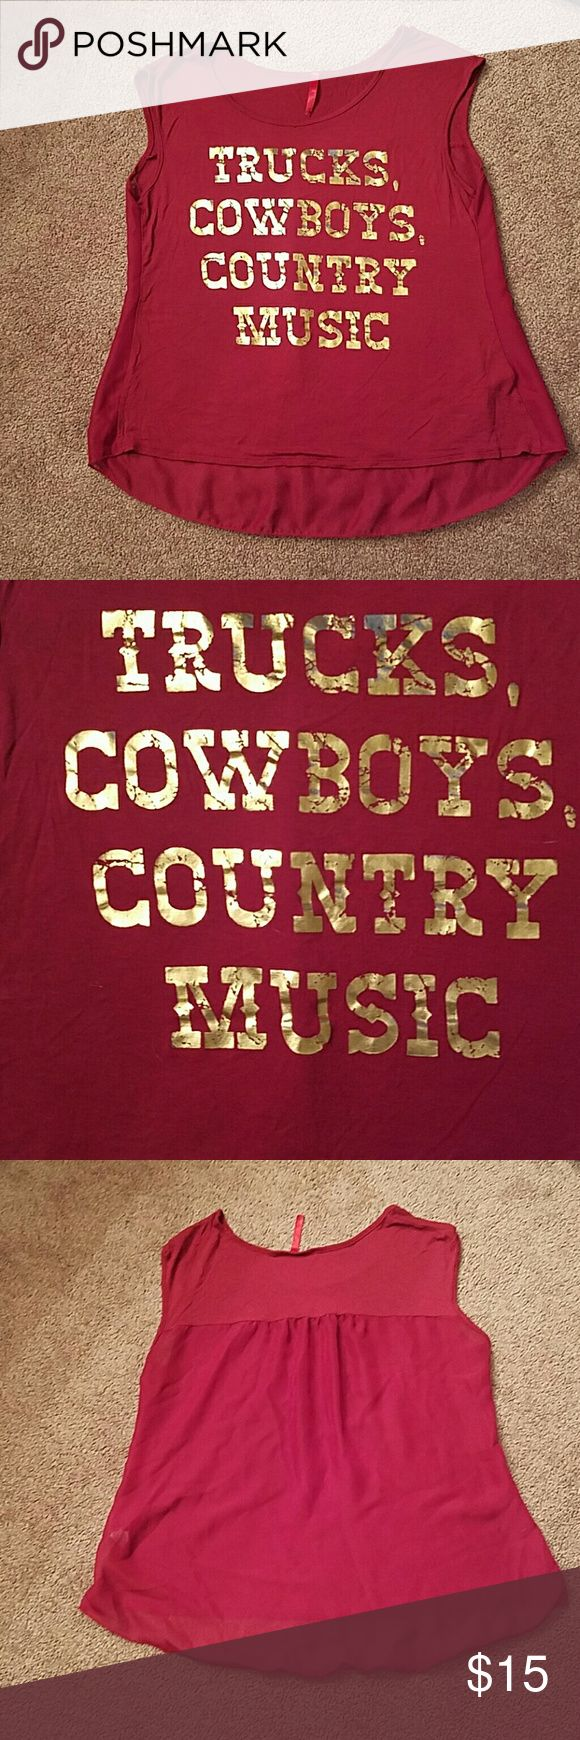 Trucks, cowboys, country music maroon tee Maroon with gold lettering. Back is sheer. Sleevesles/ short sleeve. Great for country music and festivals. No sign of wear or tear. Tops Tees - Short Sleeve